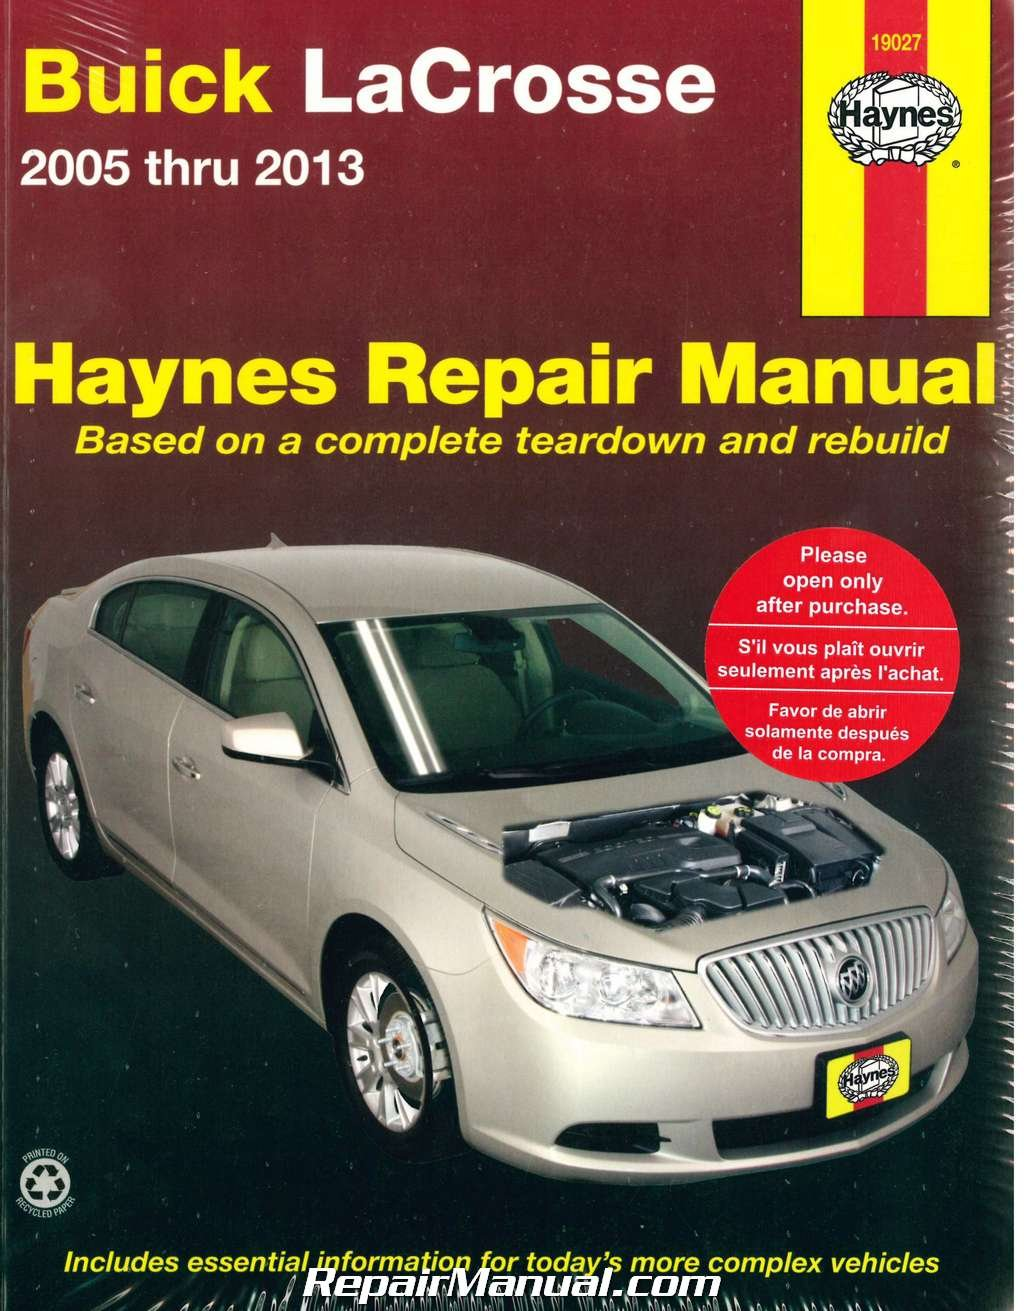 buick lacrosse car manual daily instruction manual guides u2022 rh testingwordpress co 2014 Buick Lacrosse 06 Buick Lacrosse